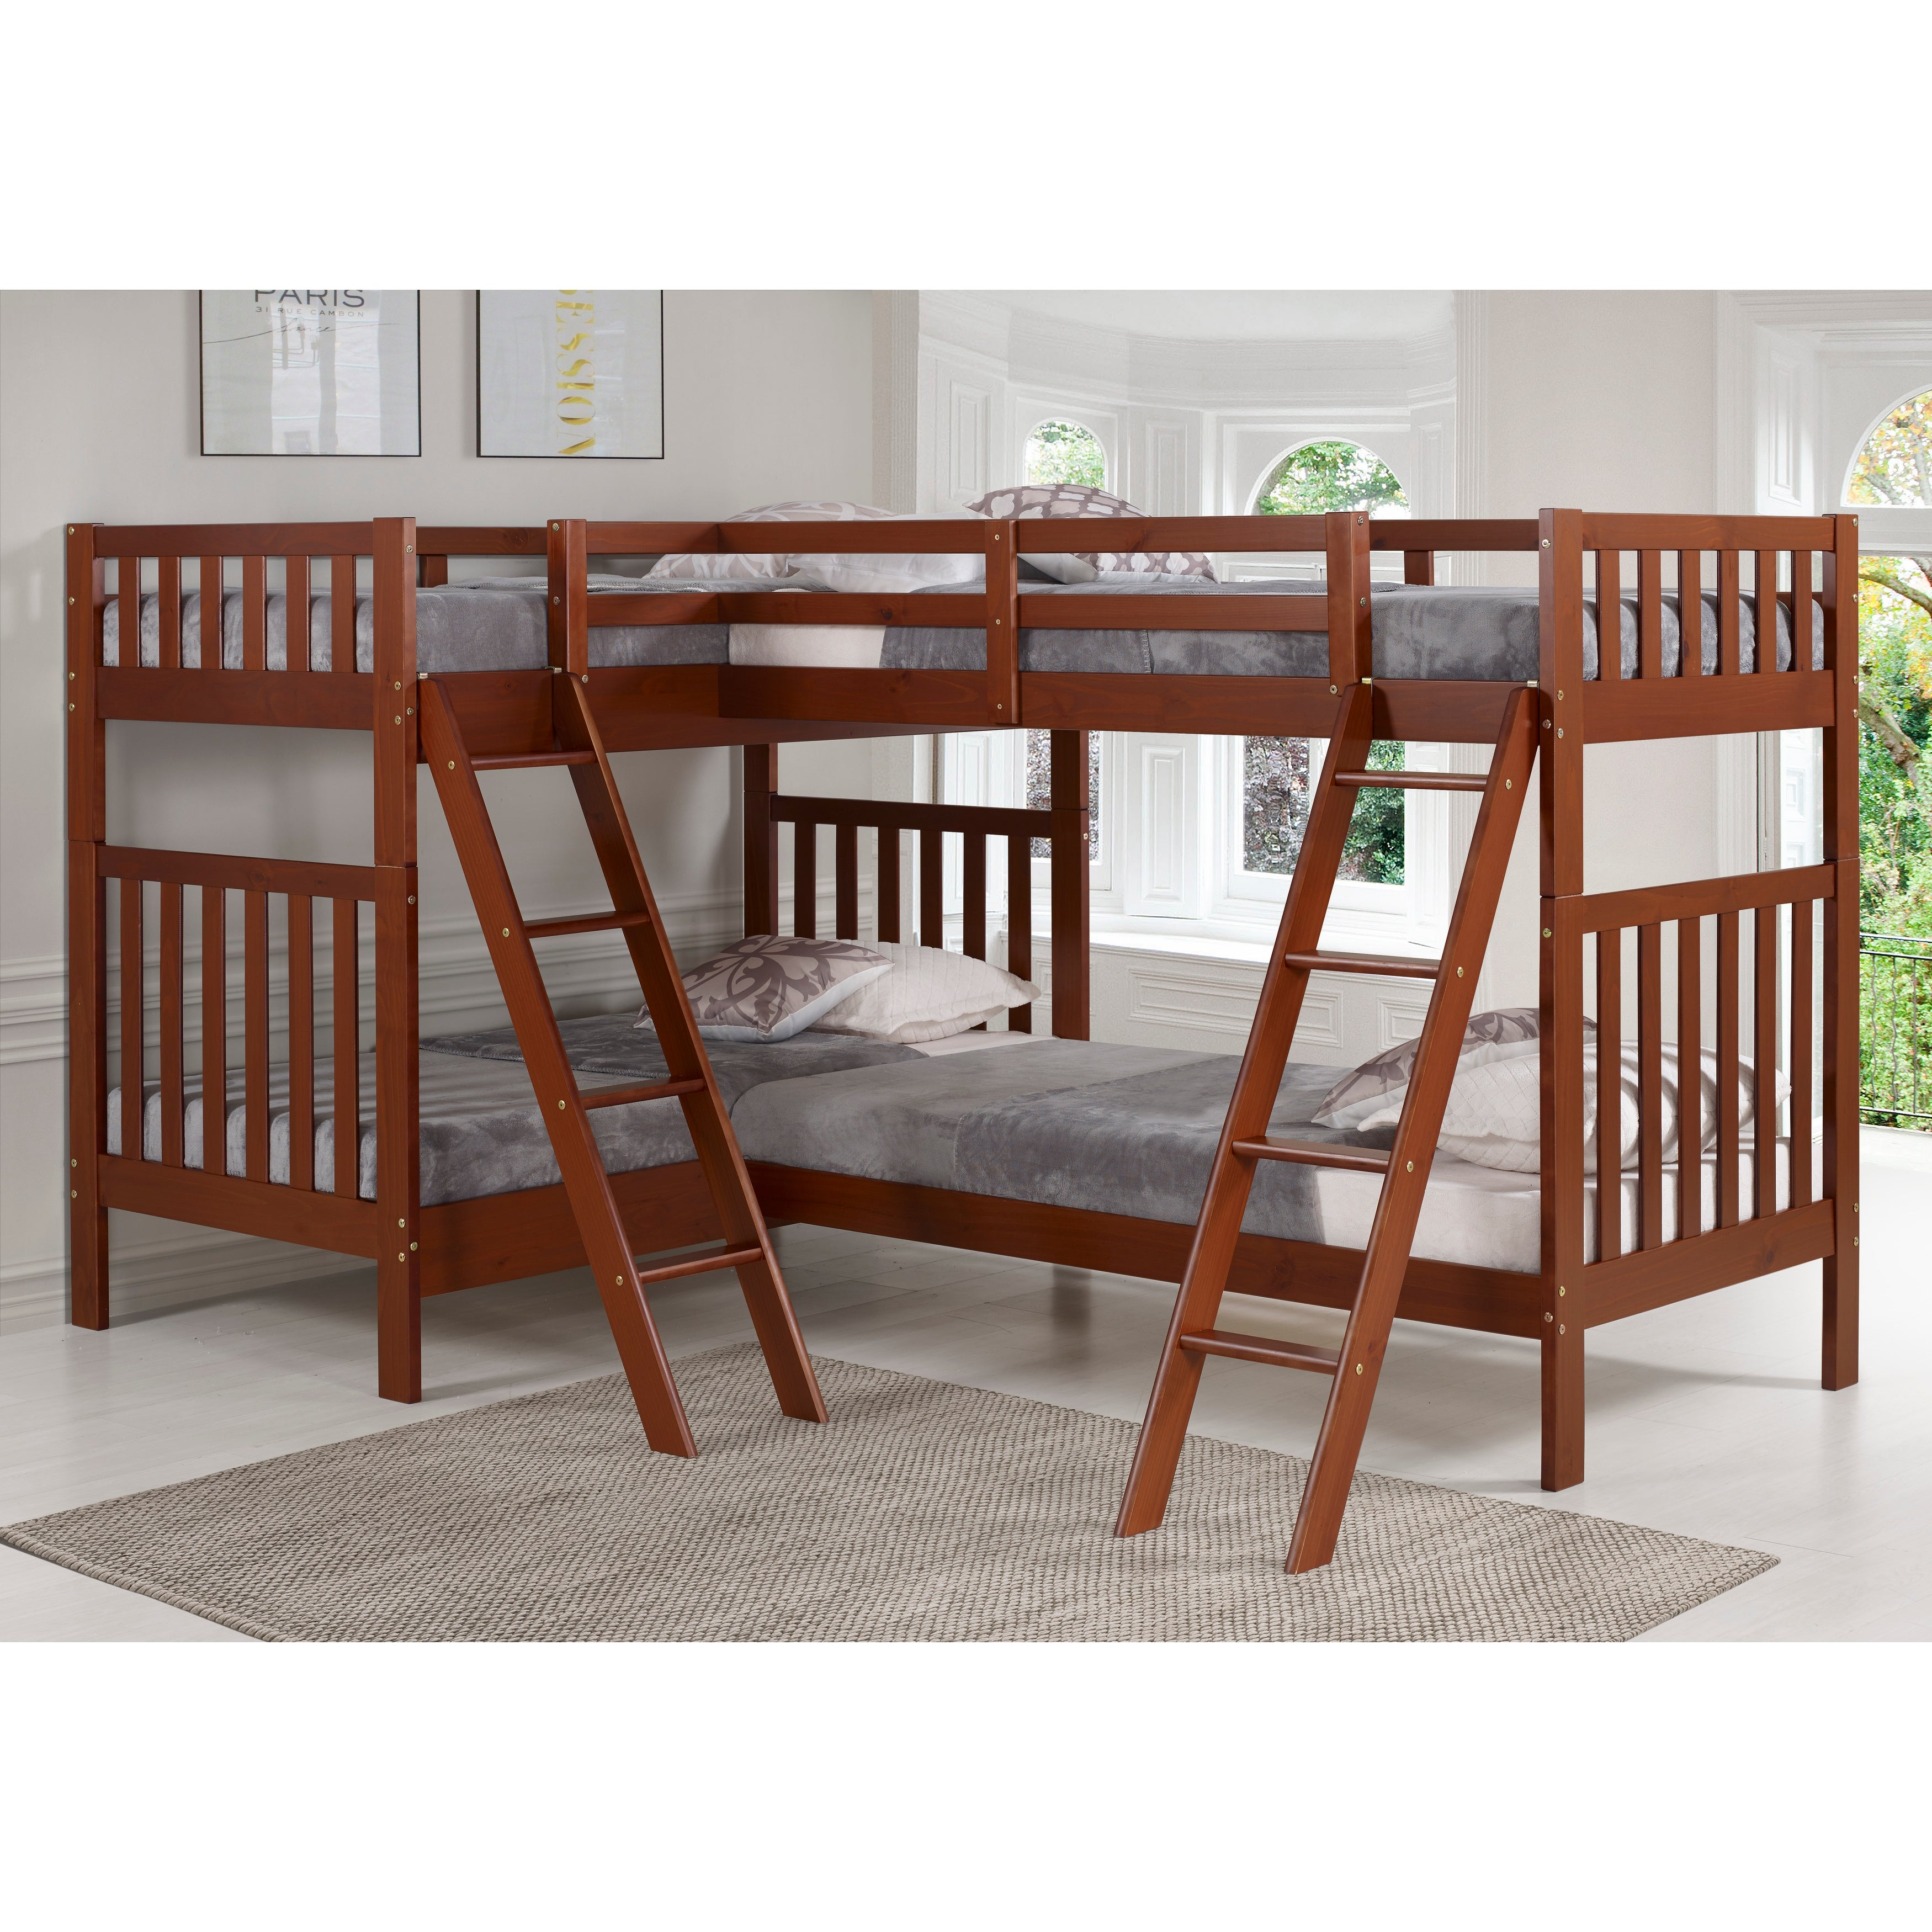 Quadruple Twin Bunk Bed Cheaper Than Retail Price Buy Clothing Accessories And Lifestyle Products For Women Men